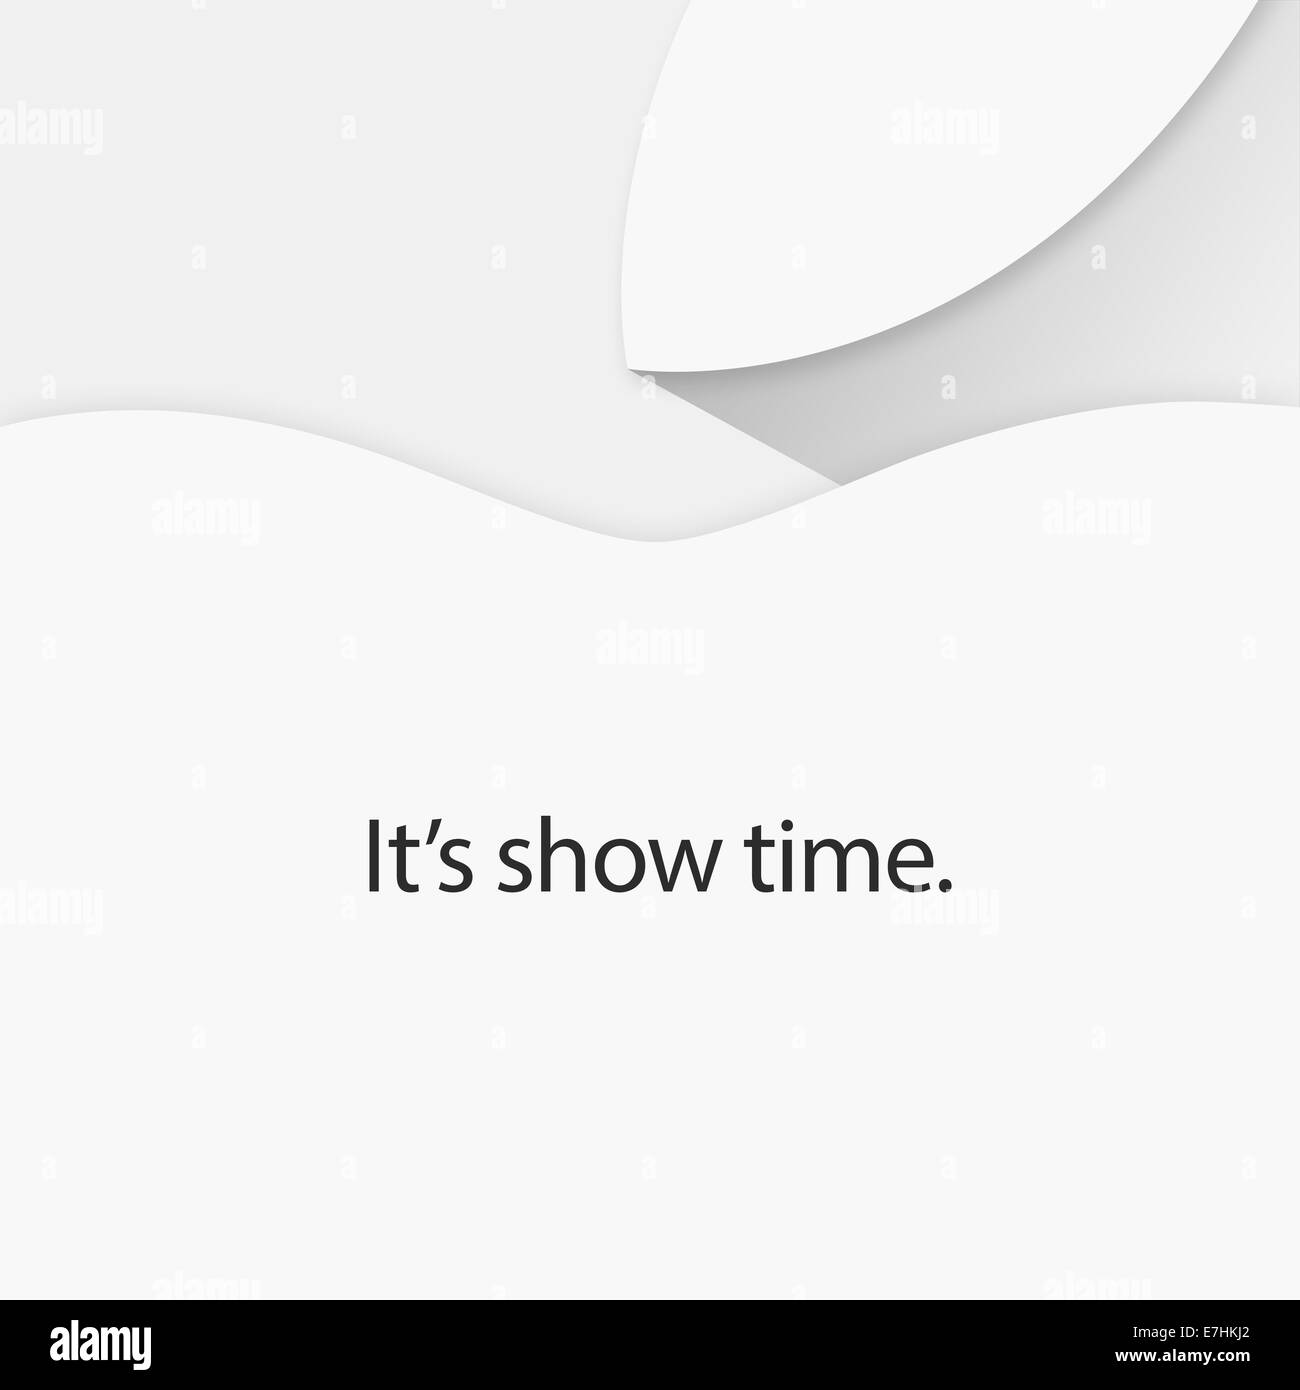 It's show time, text against white background, apple logo. - Stock Image